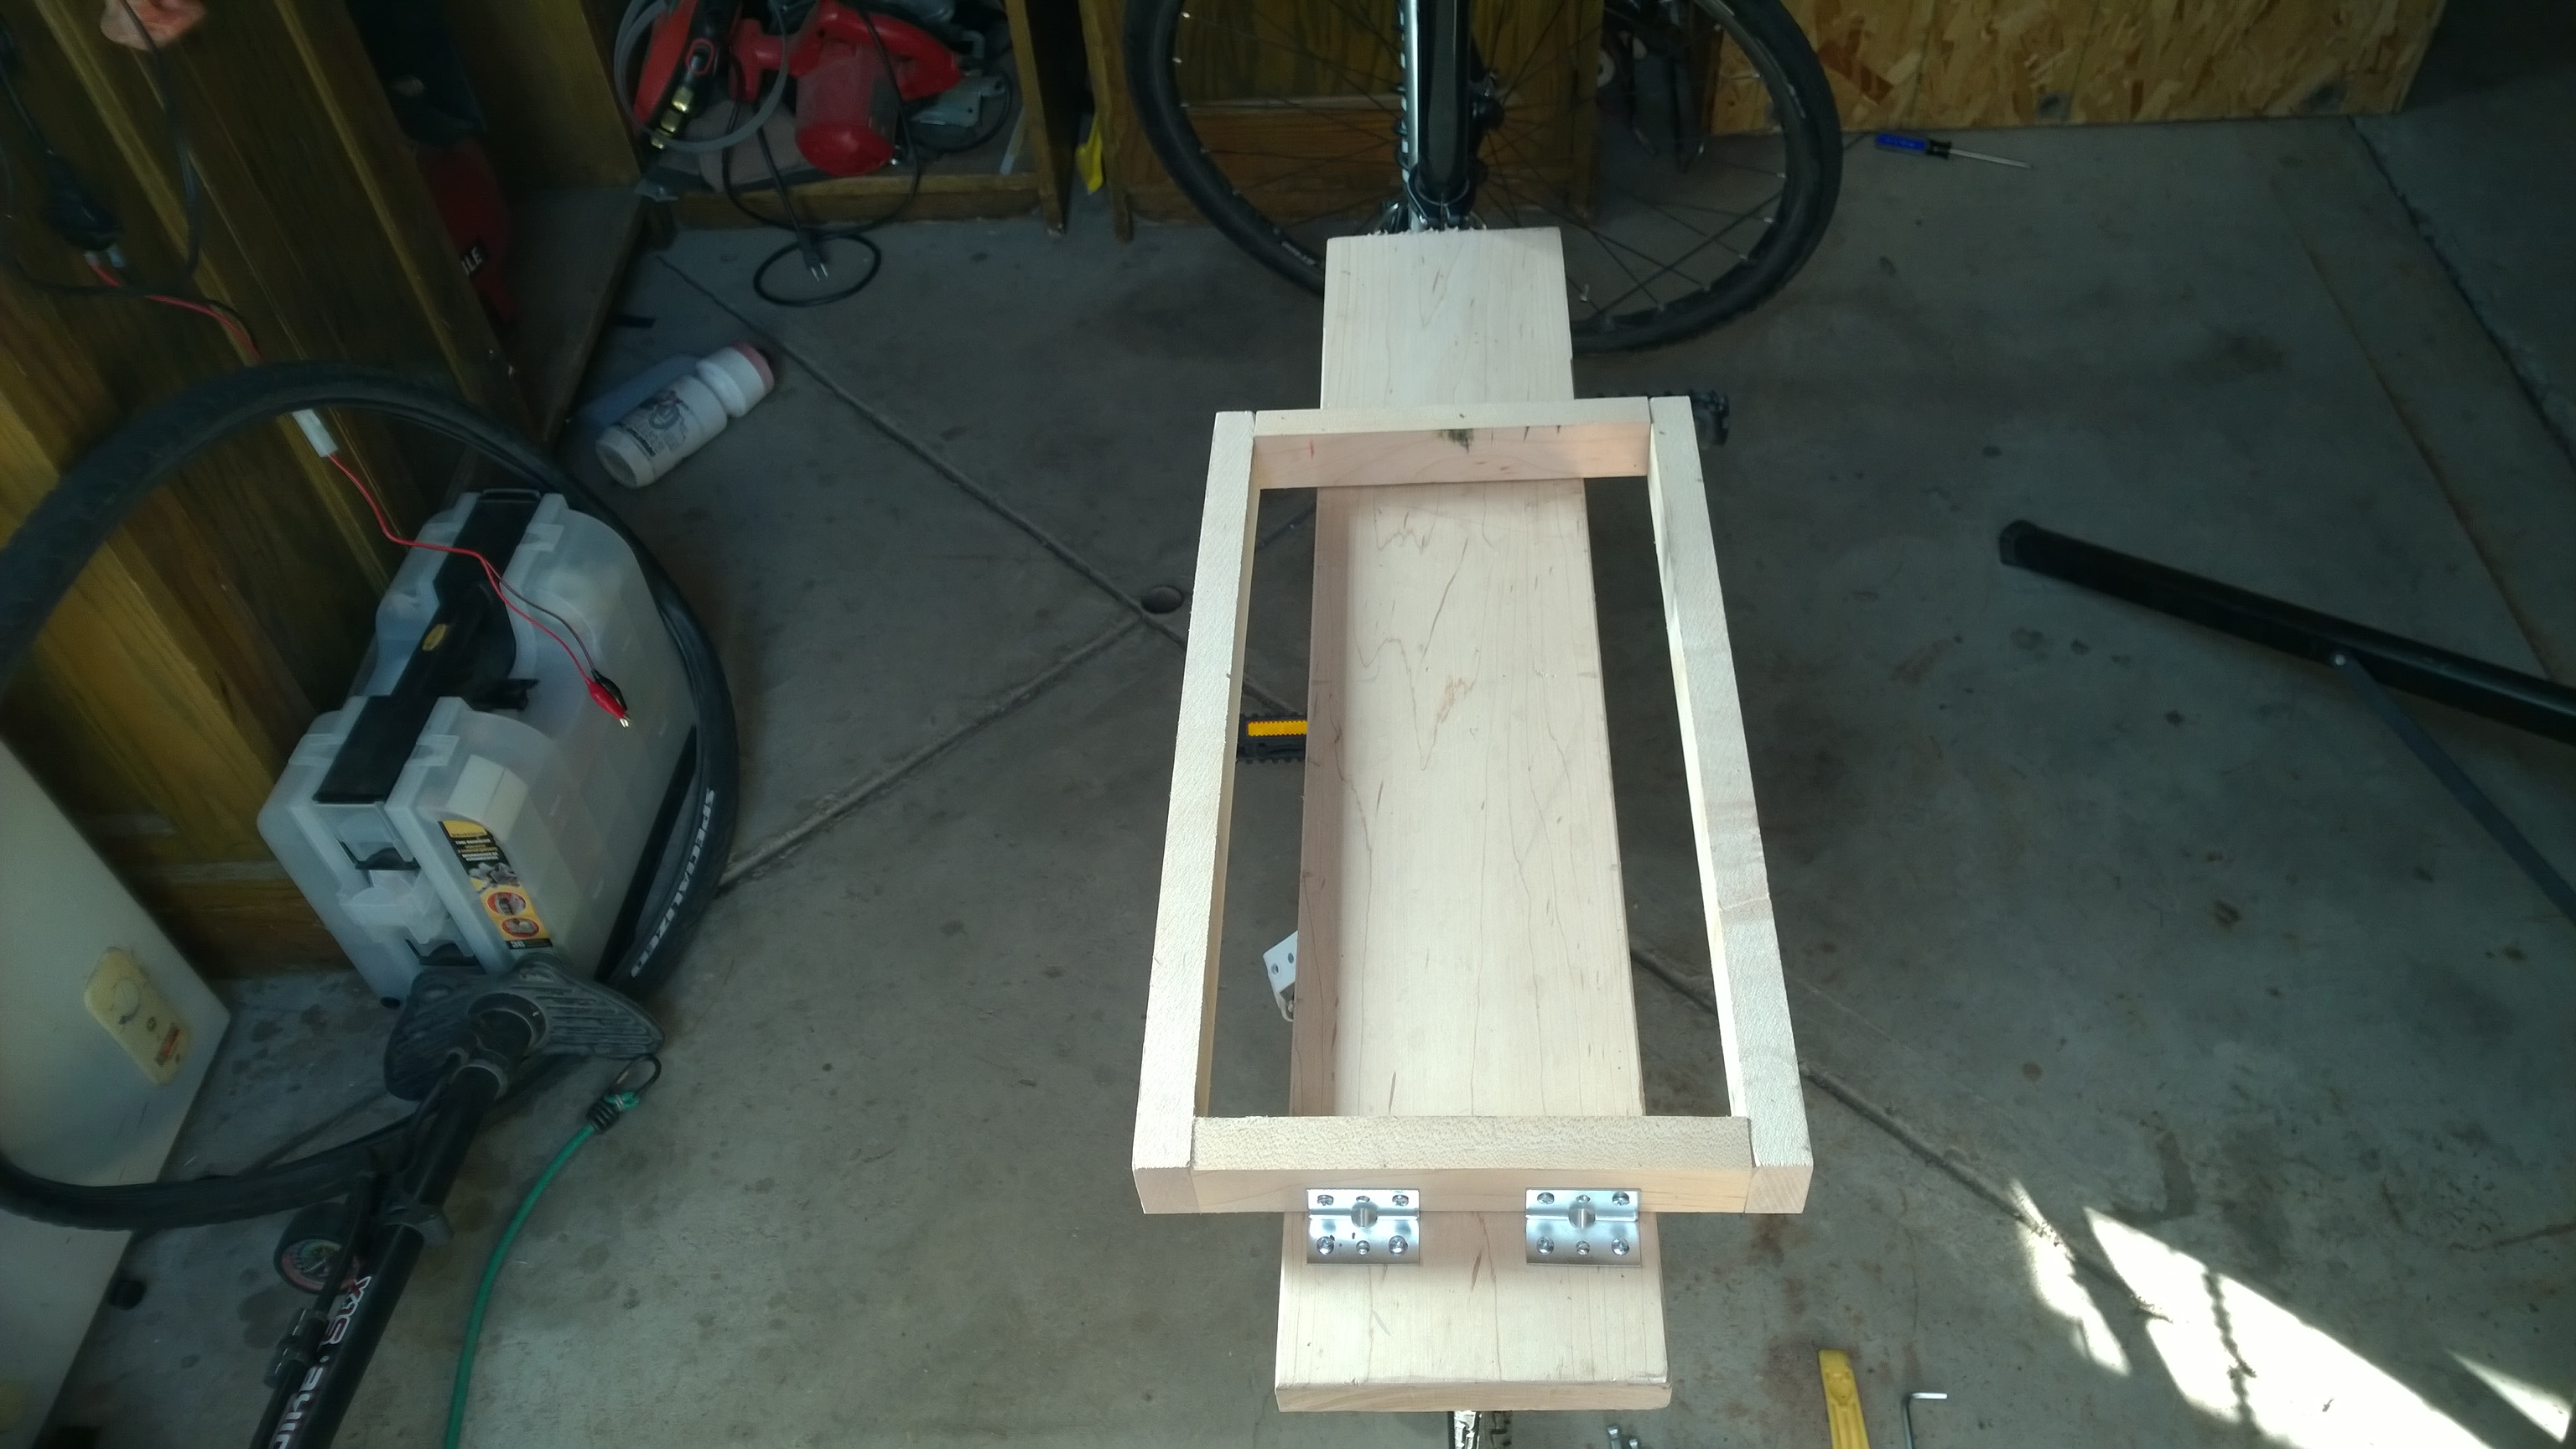 How I Built My First Electric Bike Make Ideas To Hide Fuse Box Battery Holder The Top Plate Supports Weight While Rectangle Keeps In Position